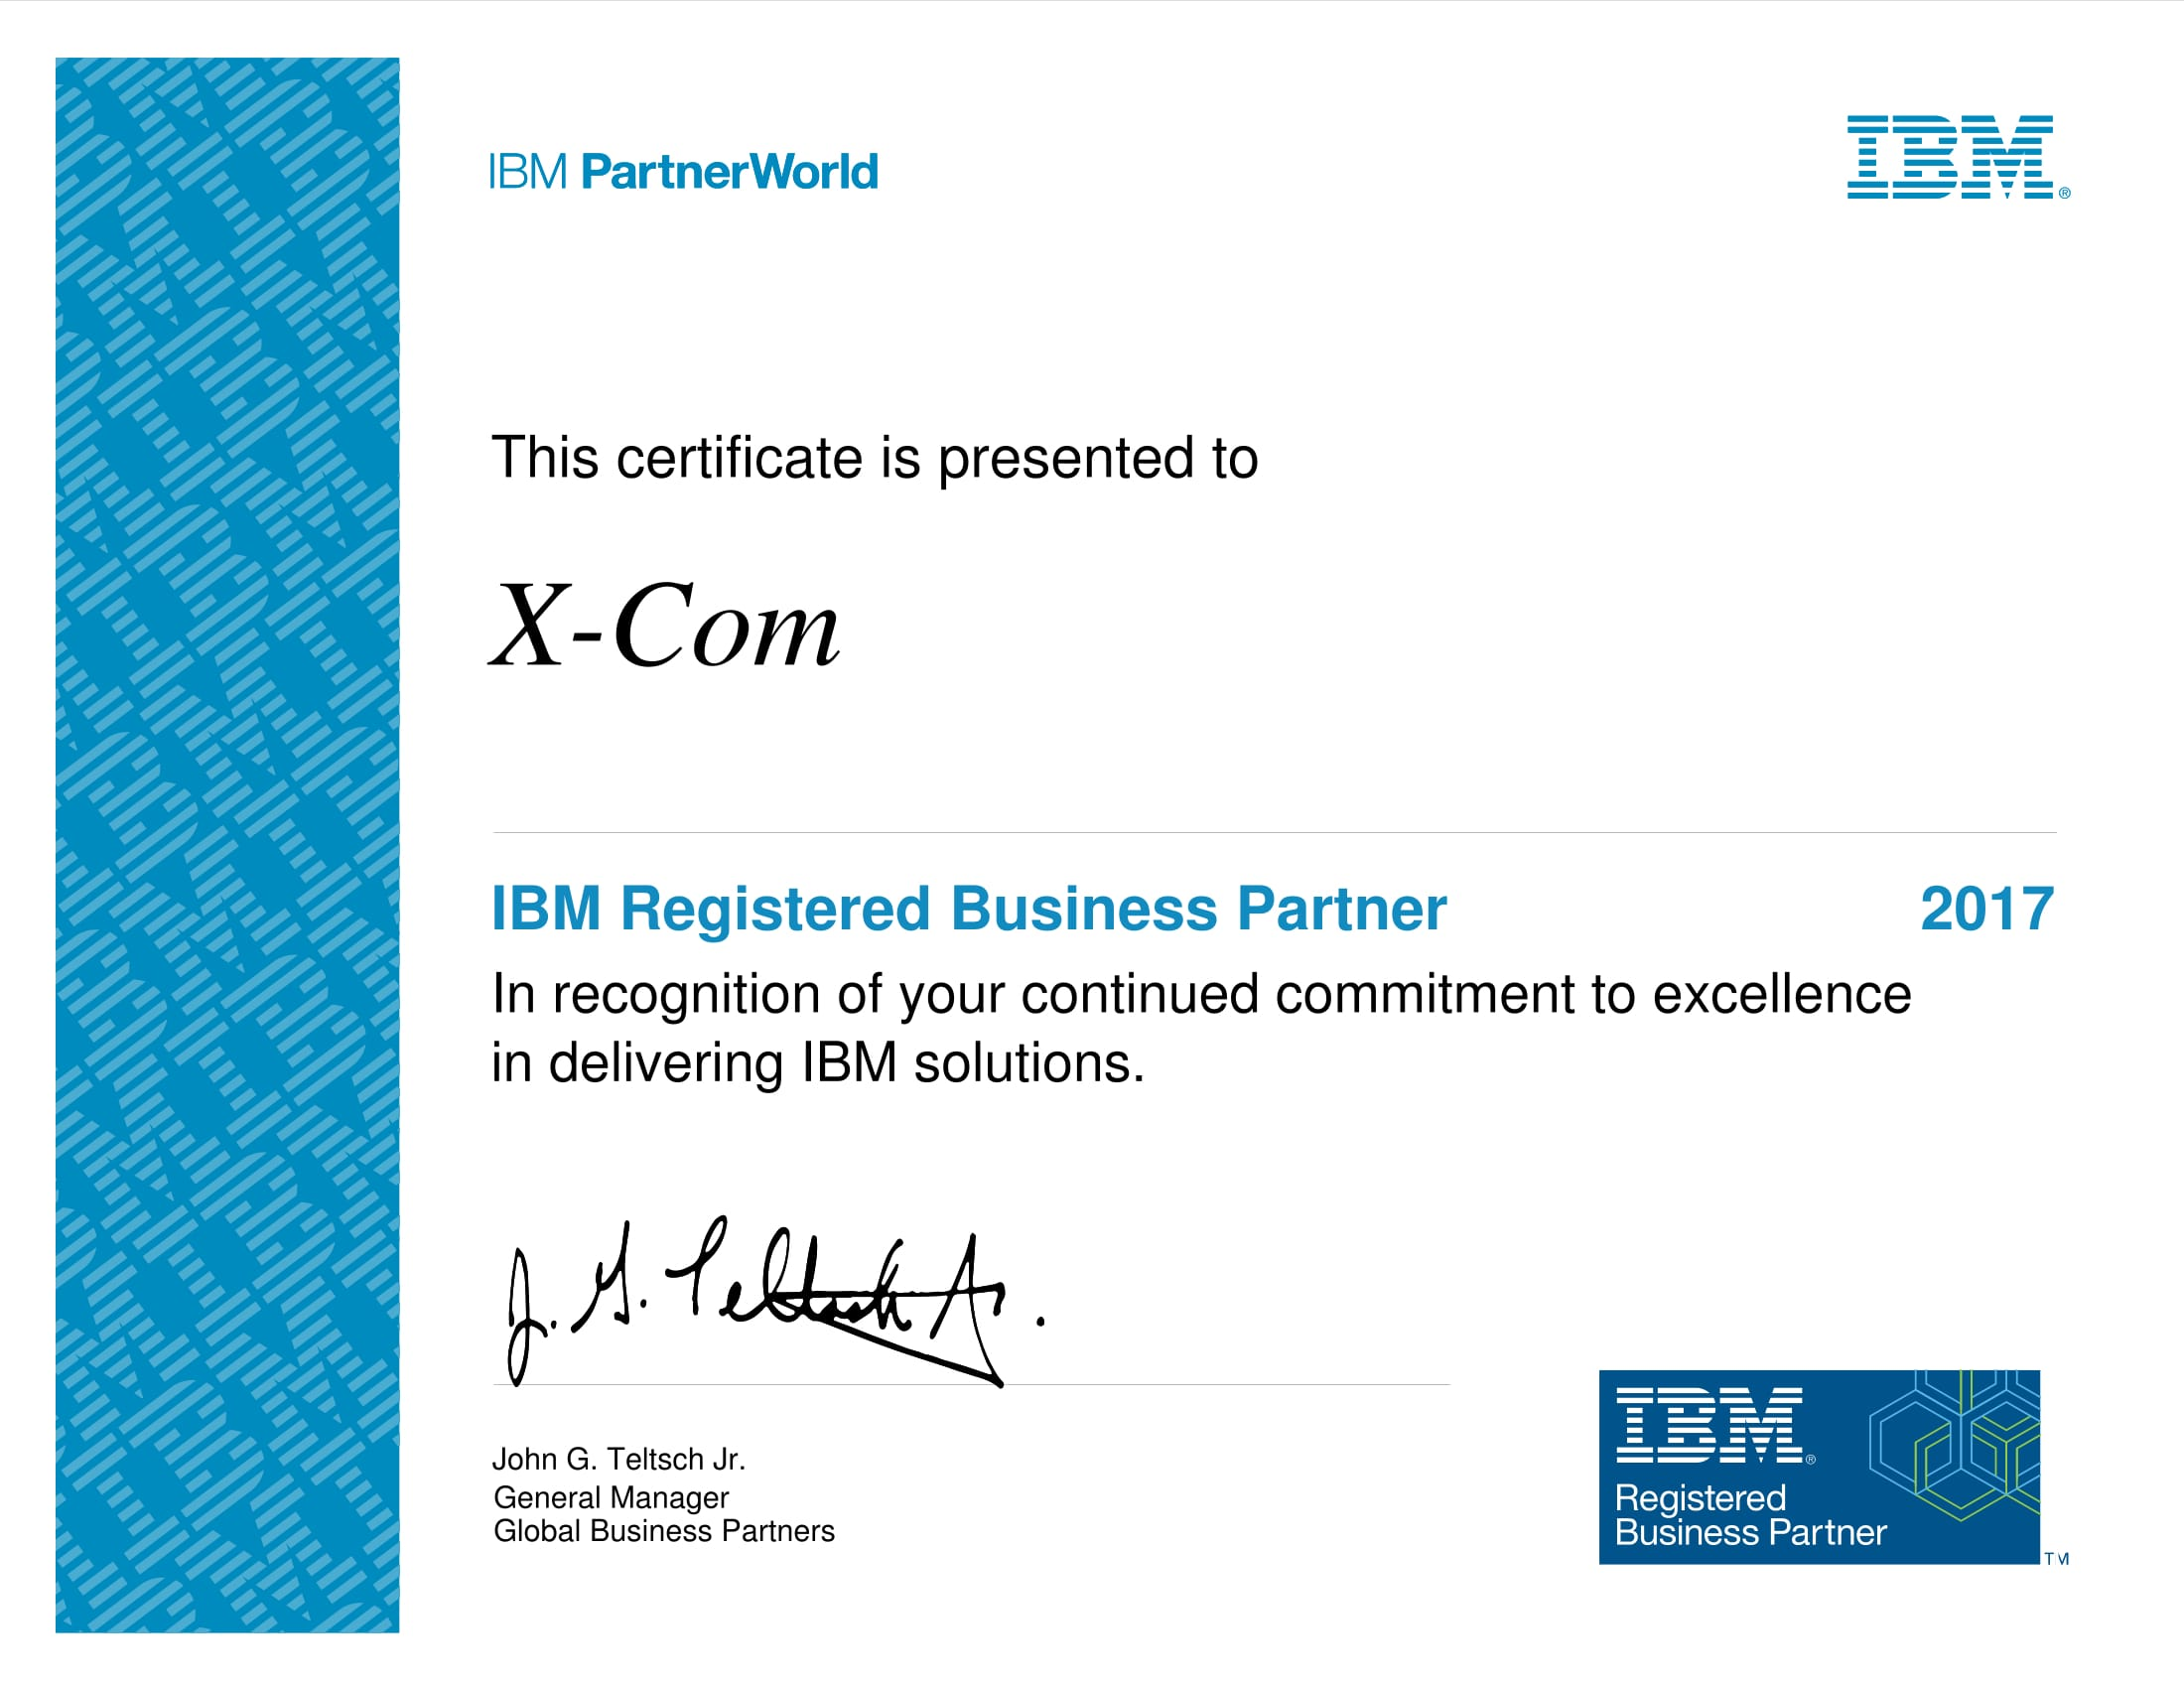 X-Com - Registered Business Partner компании IBM